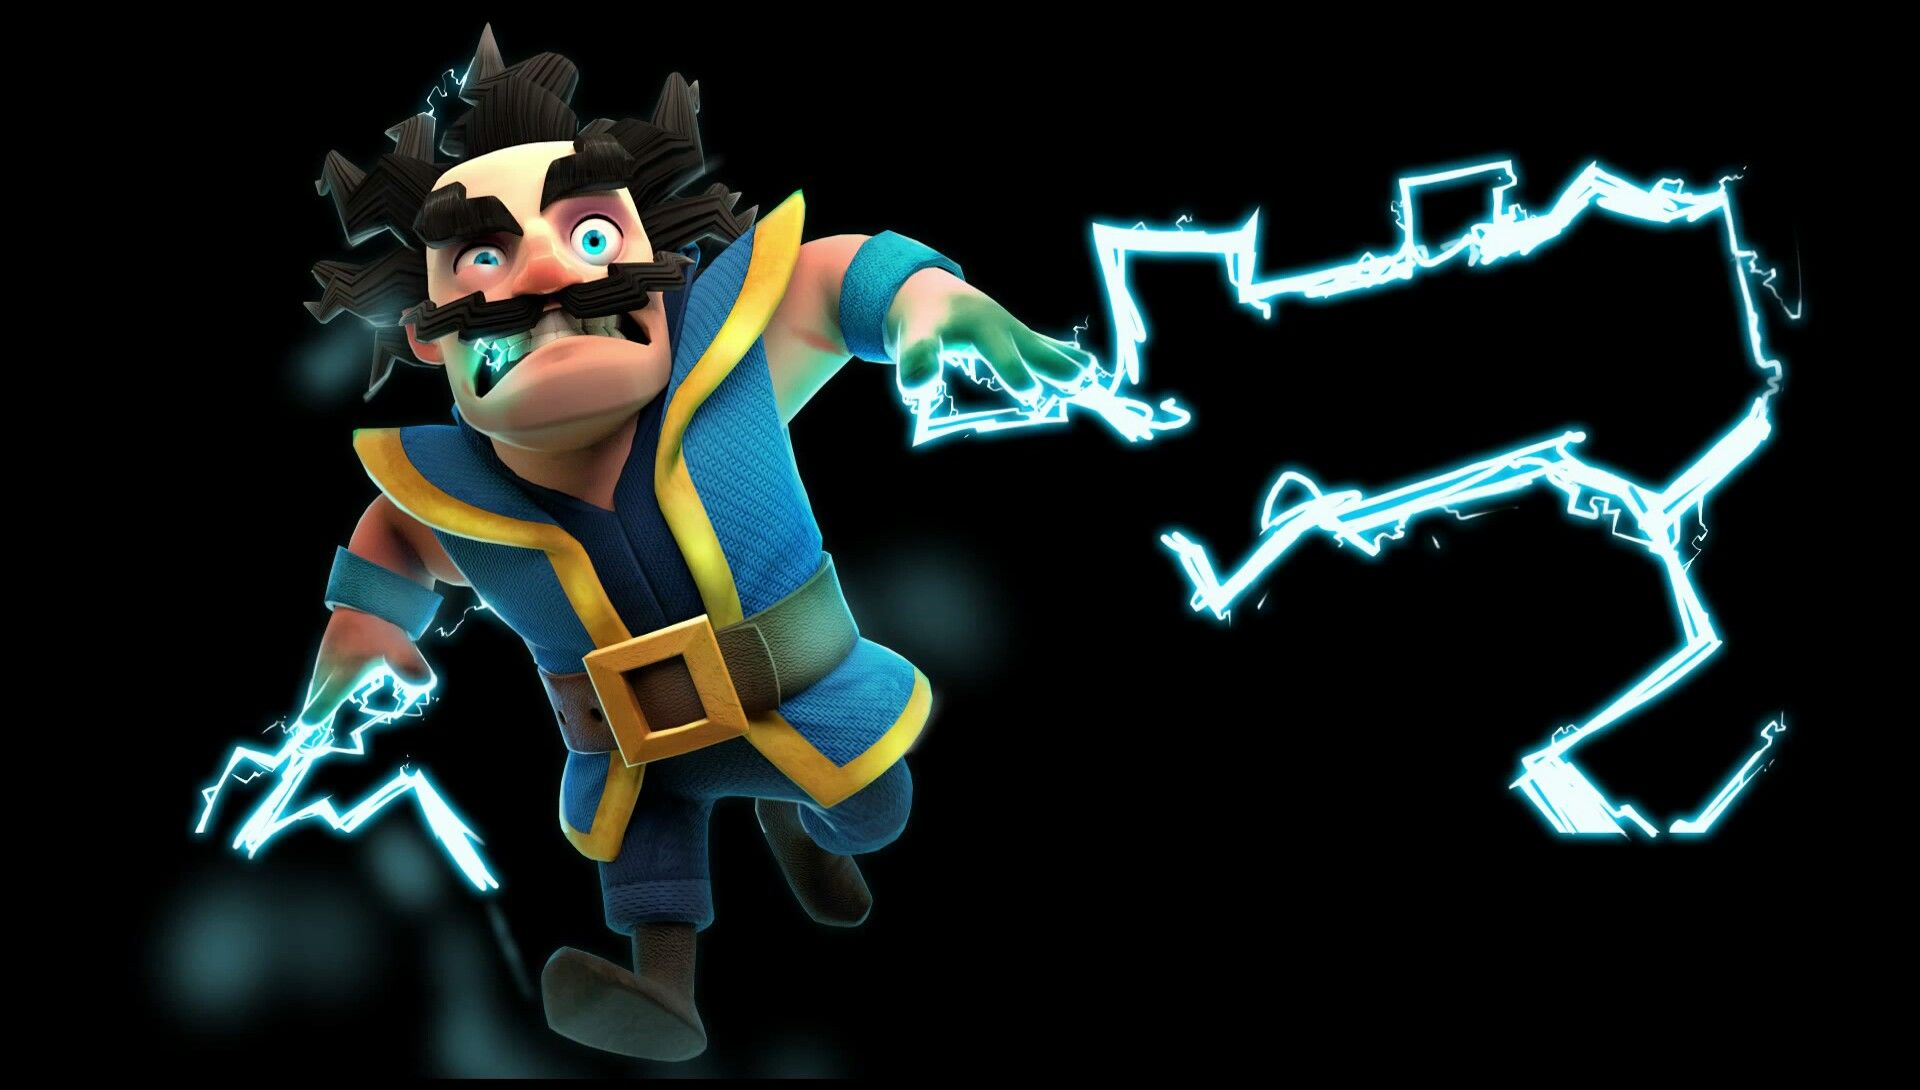 Electro Wizard Wallpaper,clash Royale, Game